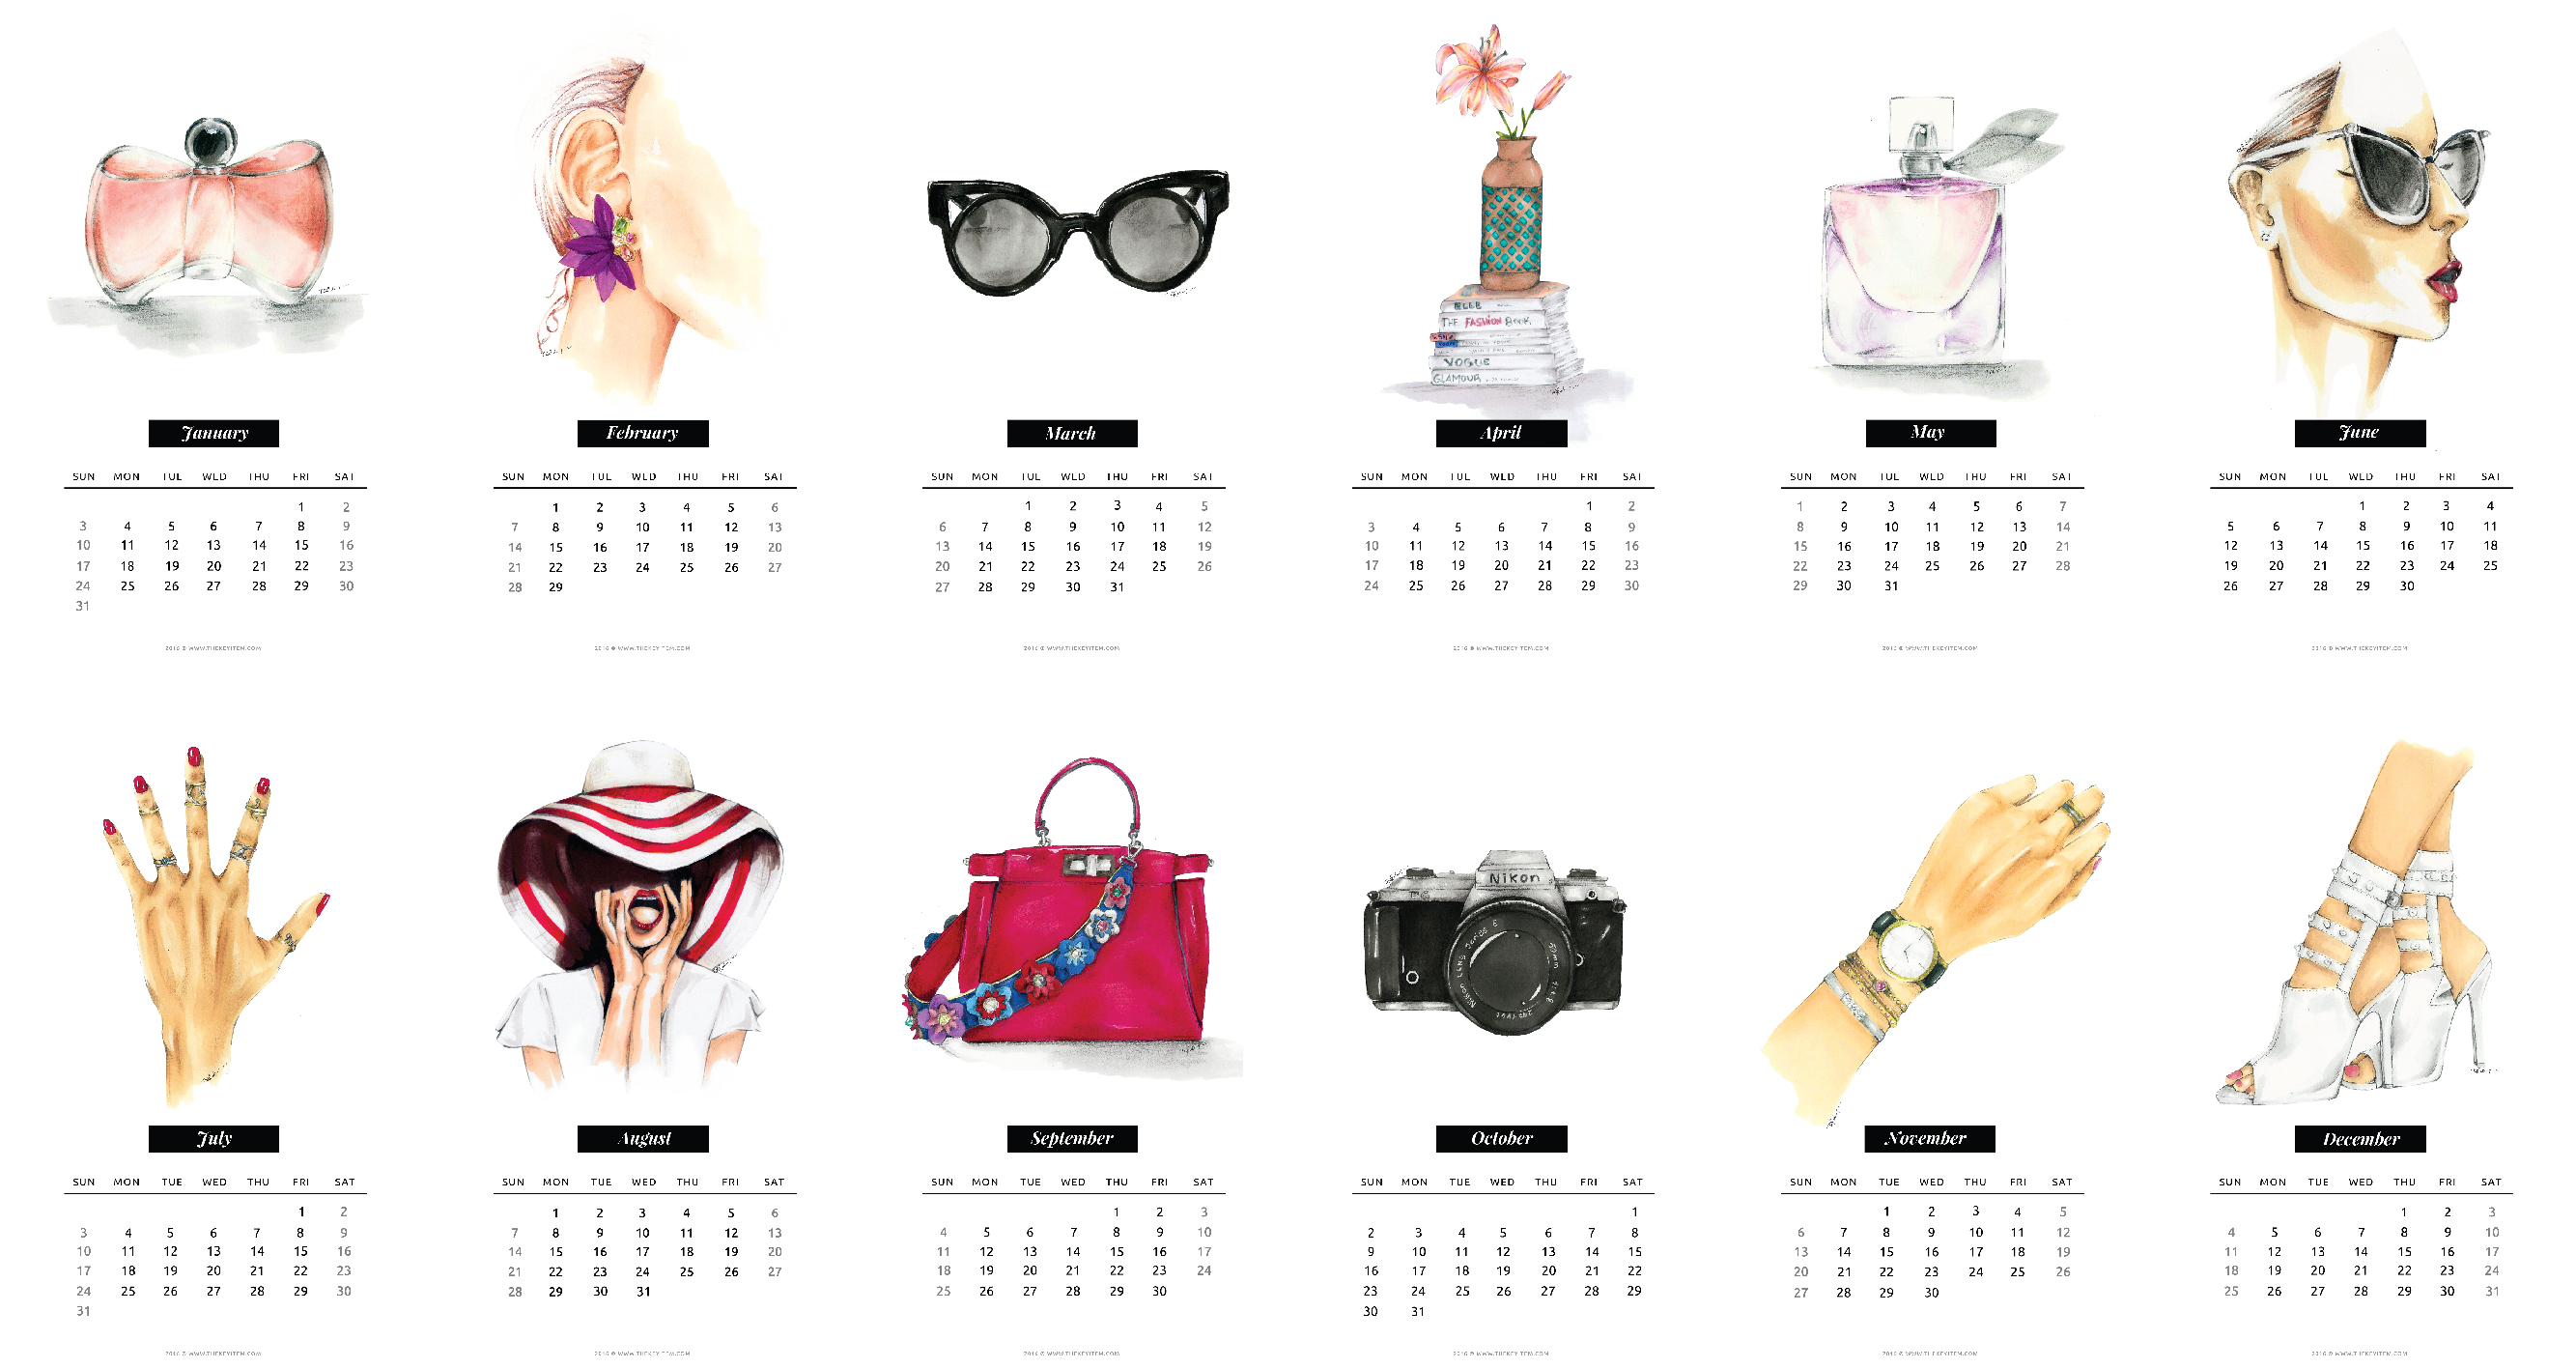 photo regarding Printable Fashion called Absolutely free Printable Model Calendar 2016 - The Secret ItemThe Main Products